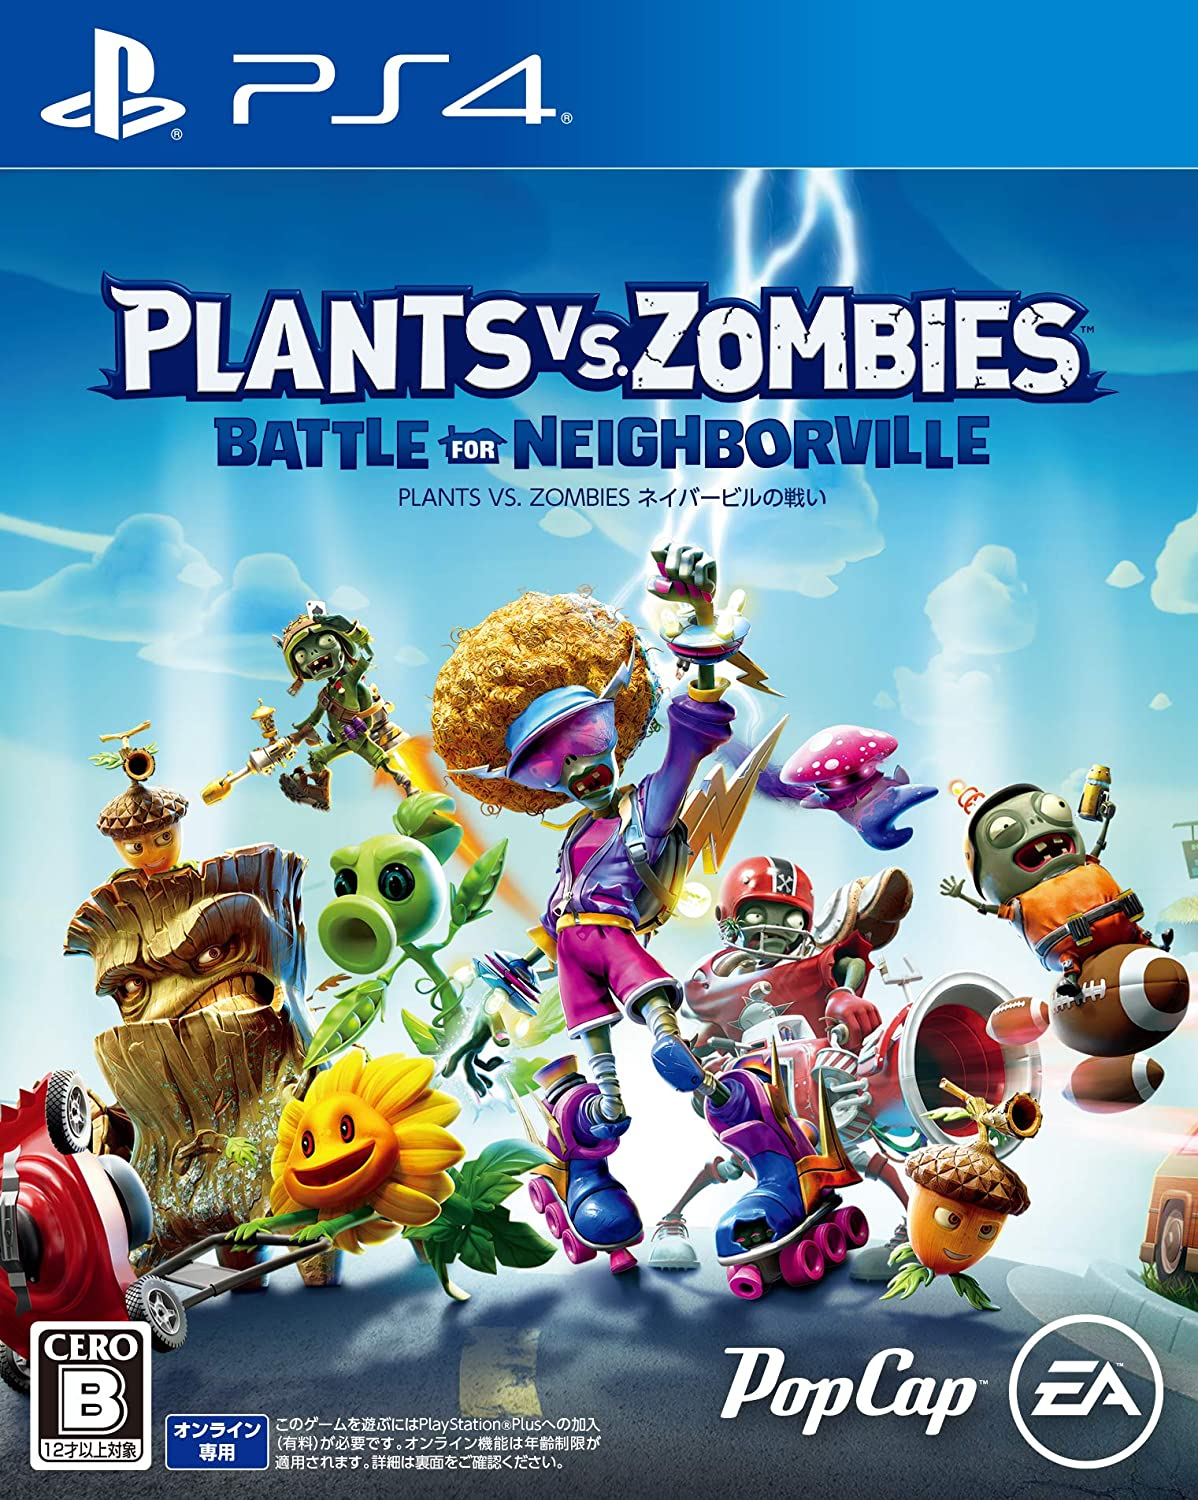 EA PLANTS VS ZOMBIES BATTLE FOR NEIGHBORVILLE FOR SONY PS4 REGION FREE JAPANESE VERSION: Amazon.es: Juguetes y juegos